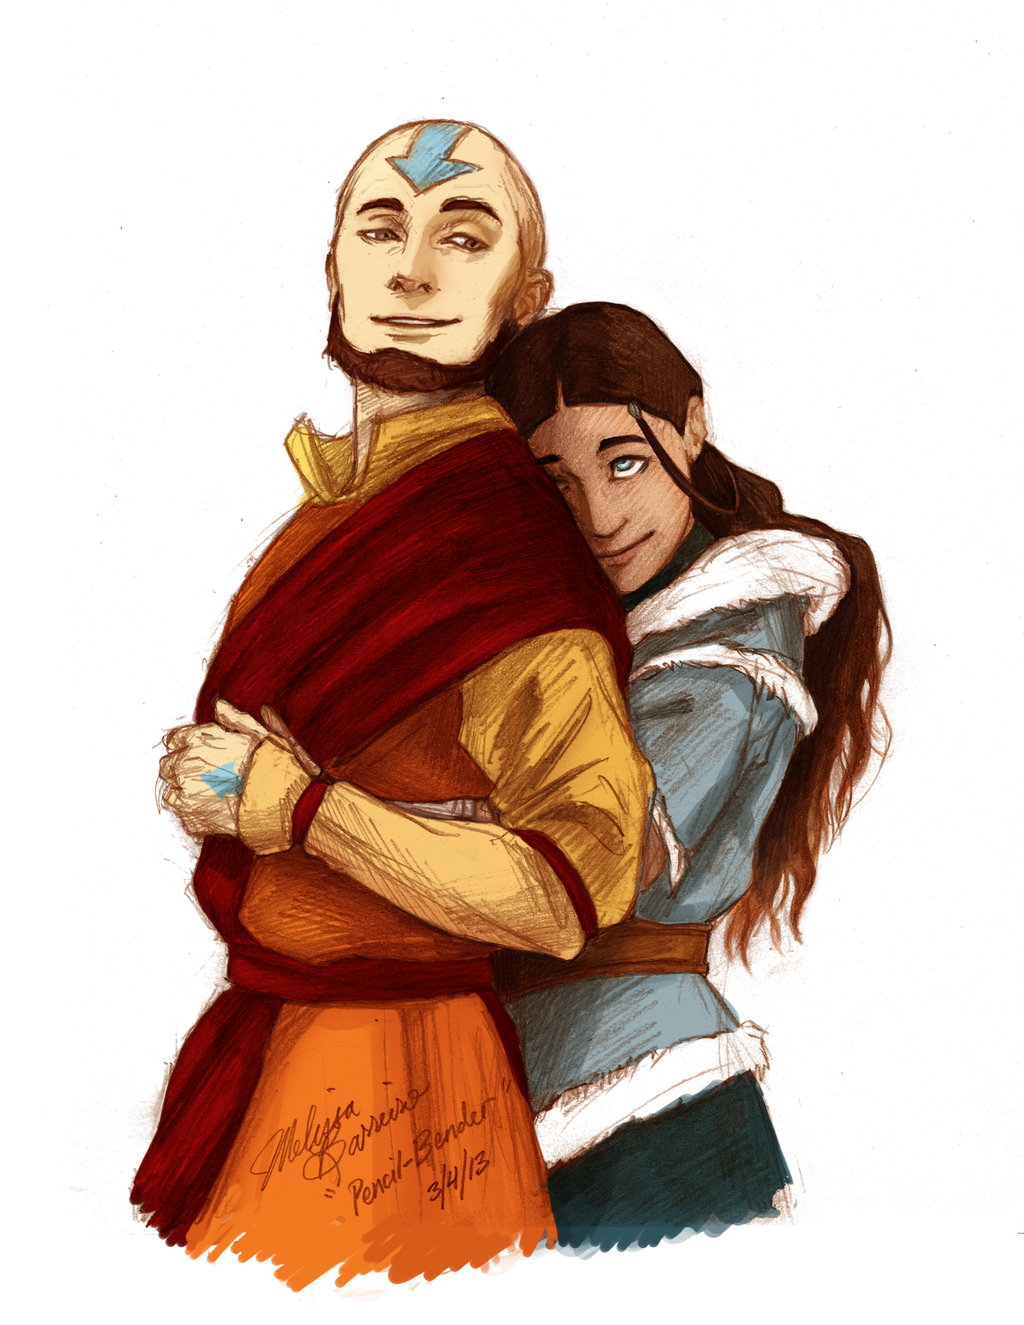 fan characters airbender the last Avatar